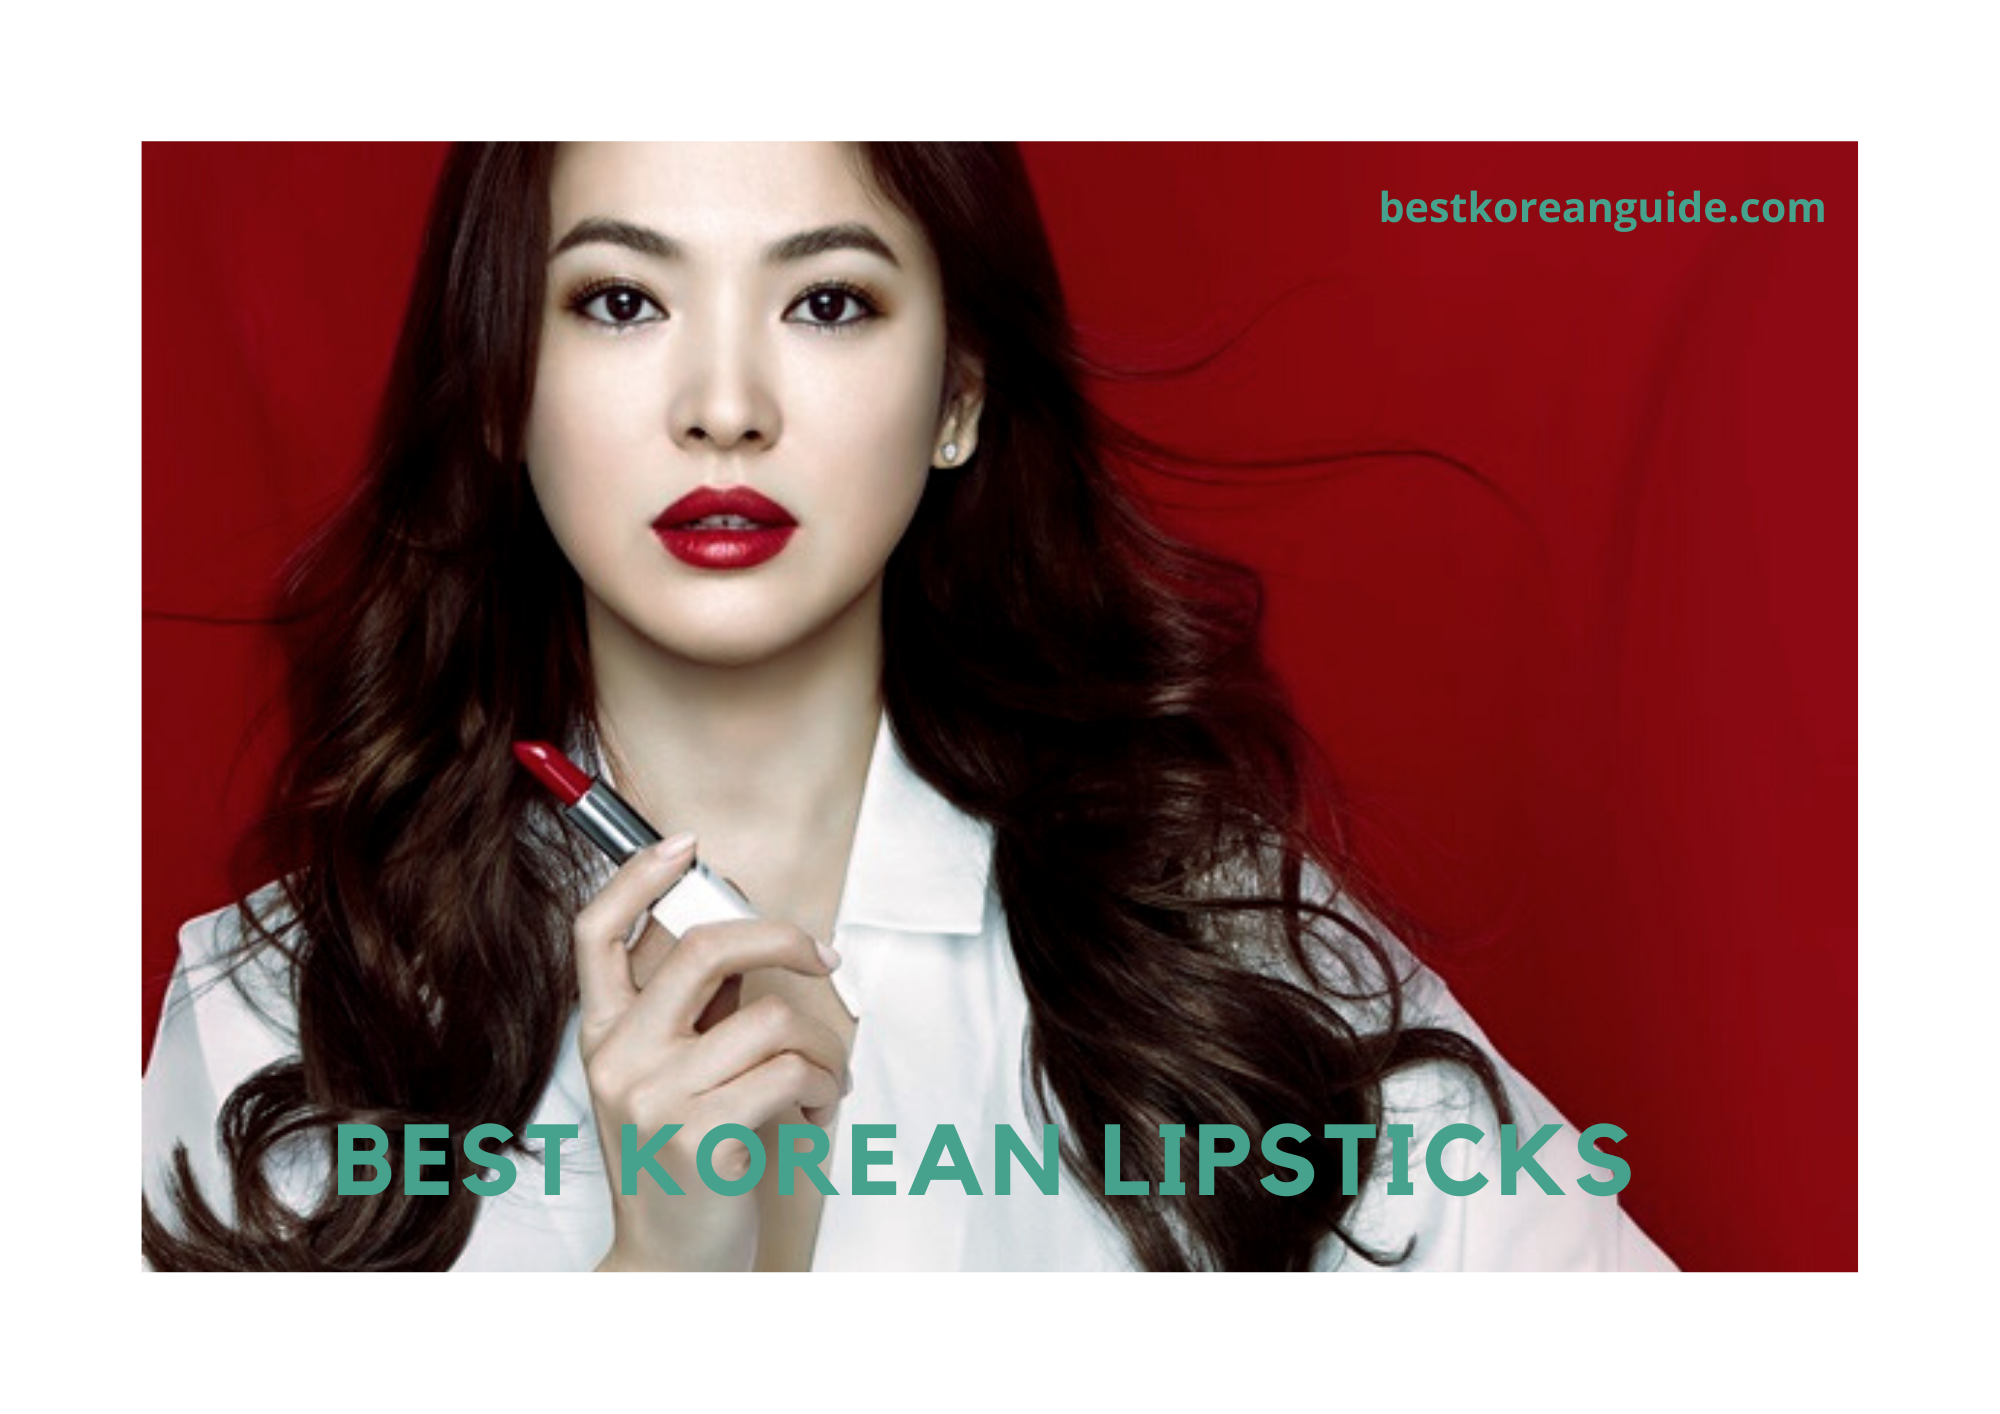 BEST KOREAN LIPSTICK